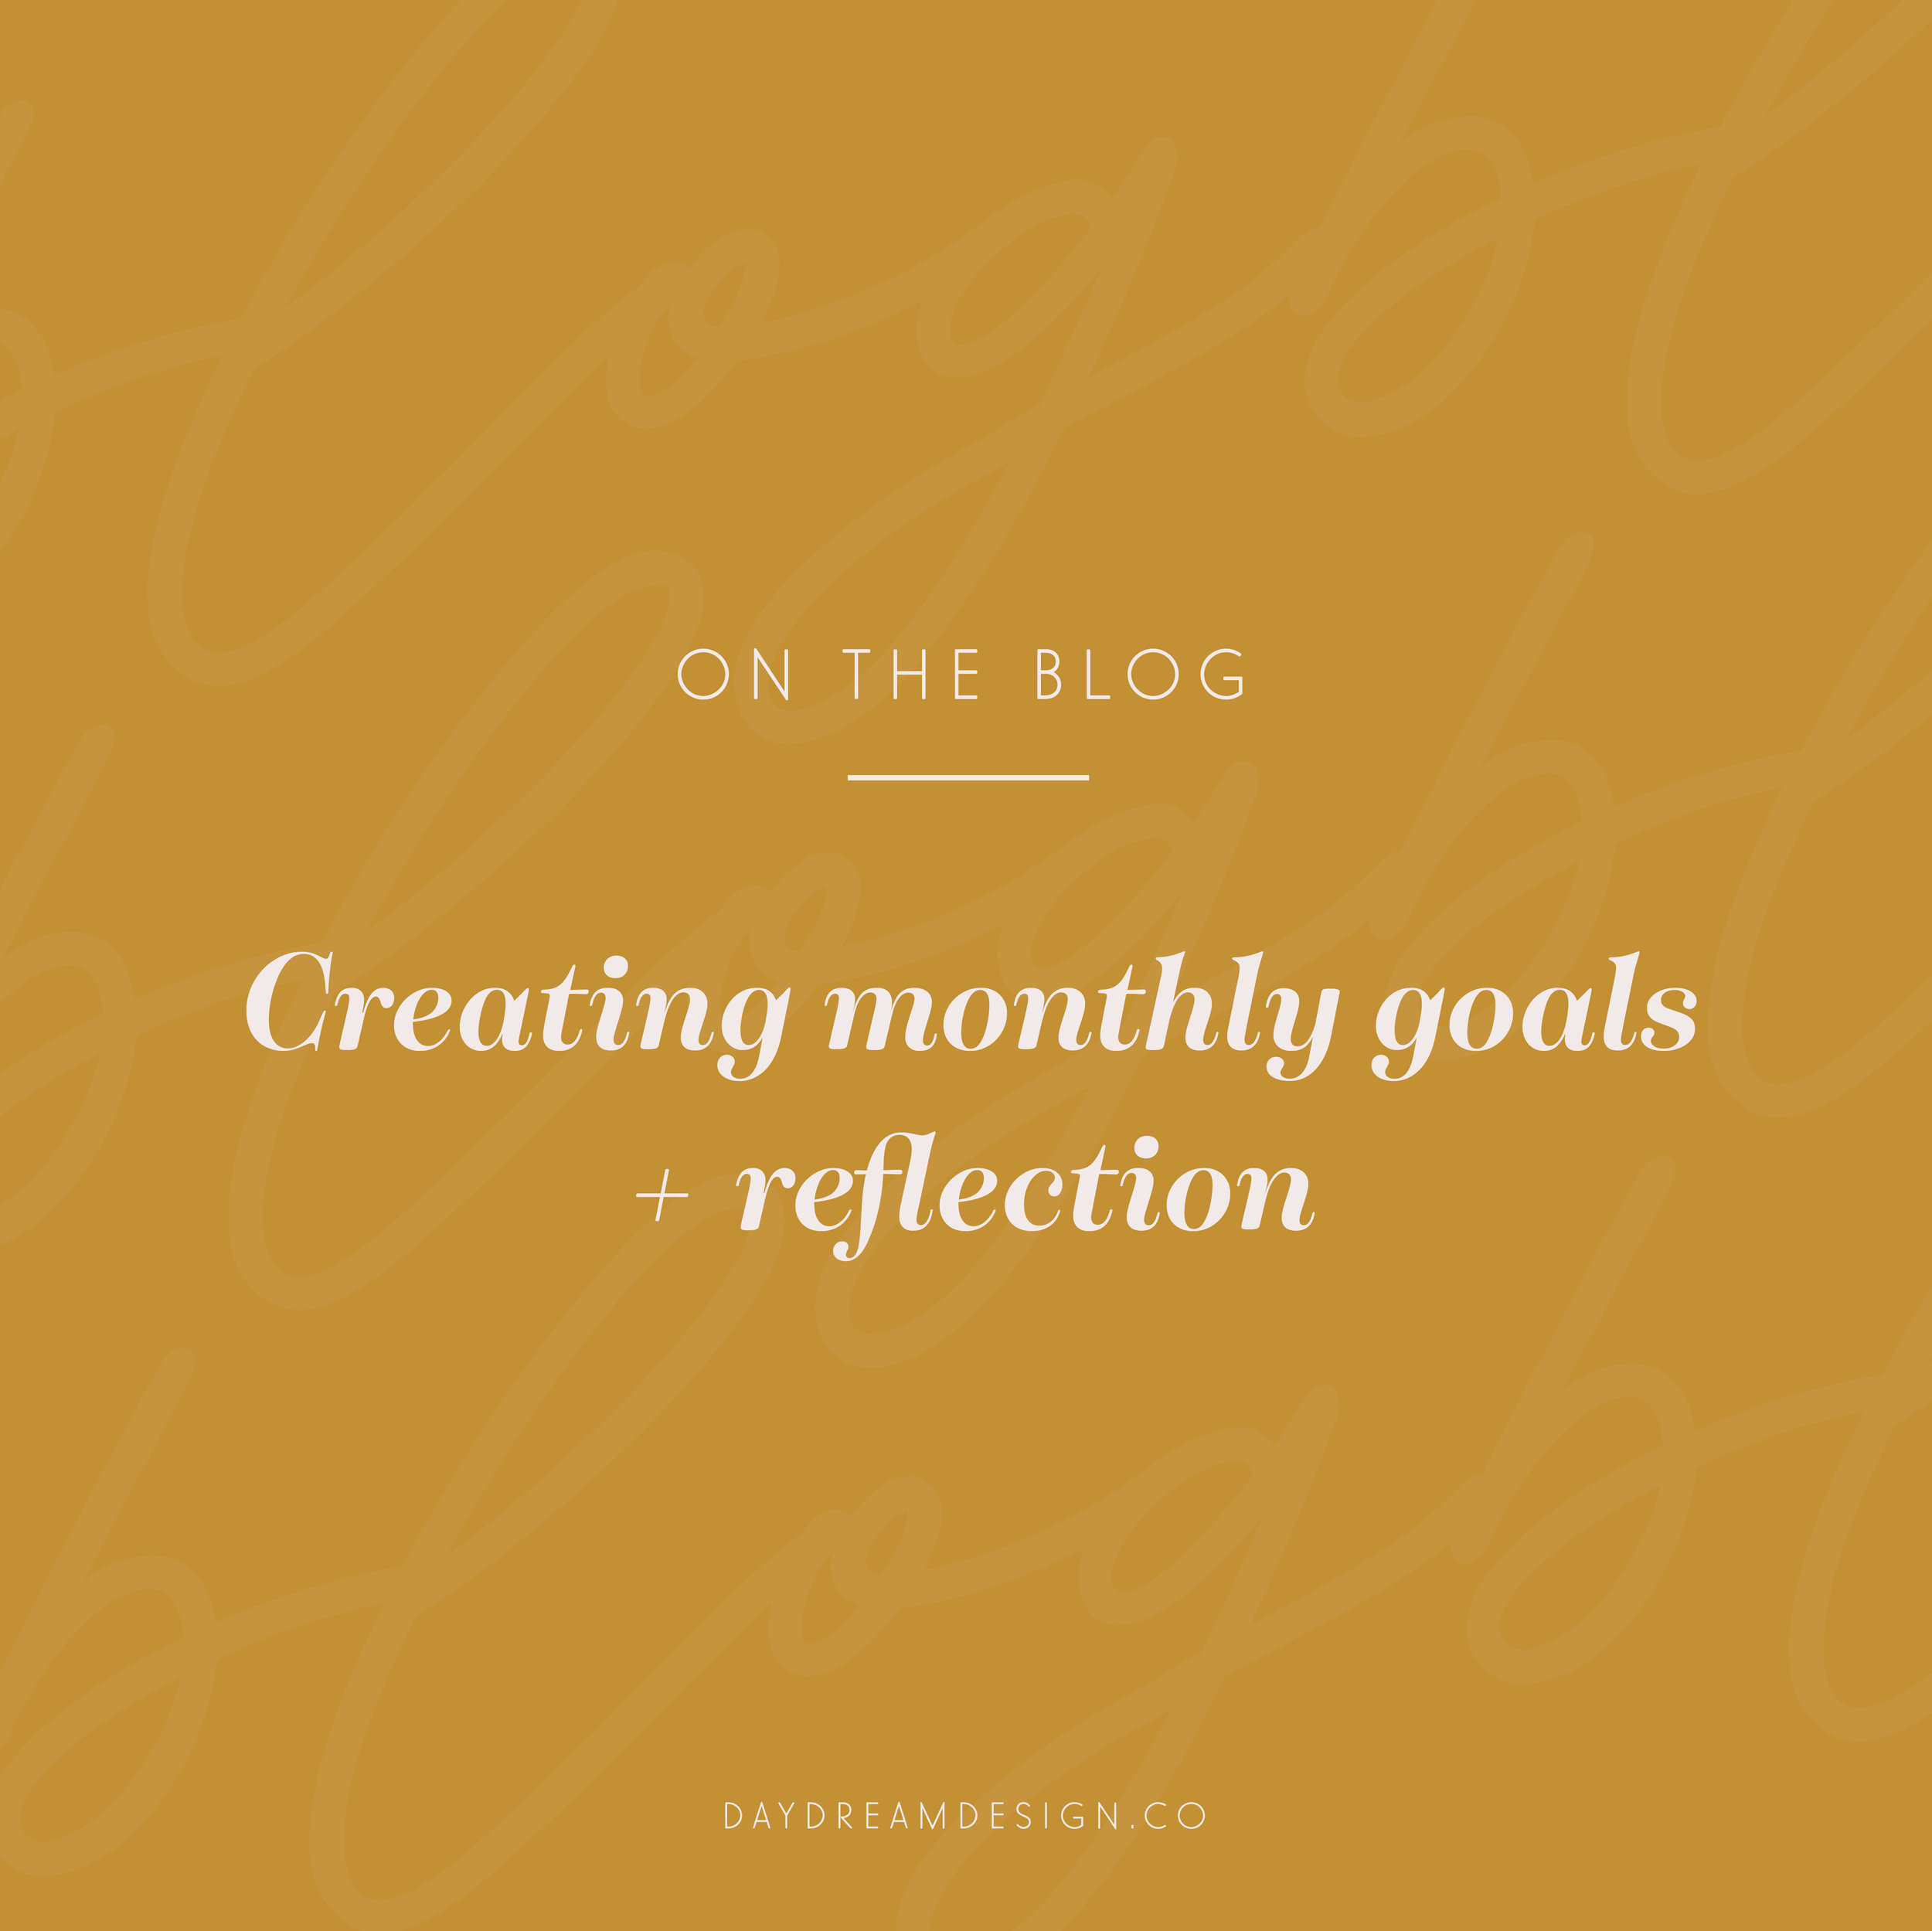 blogpost-monthly-goals-reflection-02.jpg